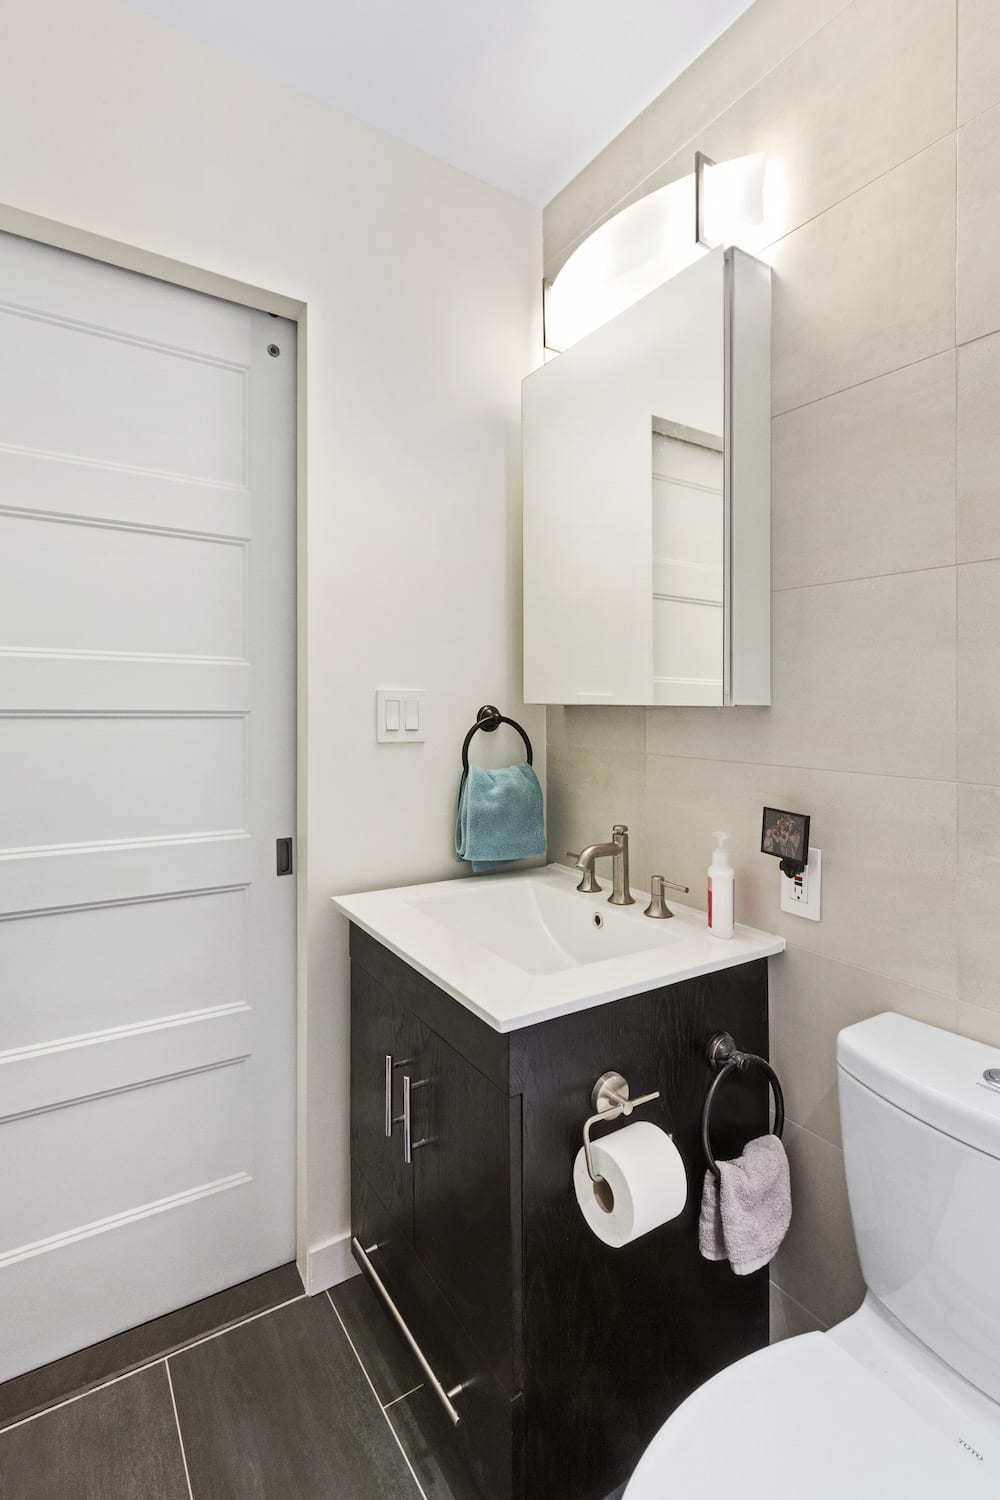 A Bathroom Remodel in a Small NYC Apartment | Apartment ... on Small Apartment Bathroom  id=19784